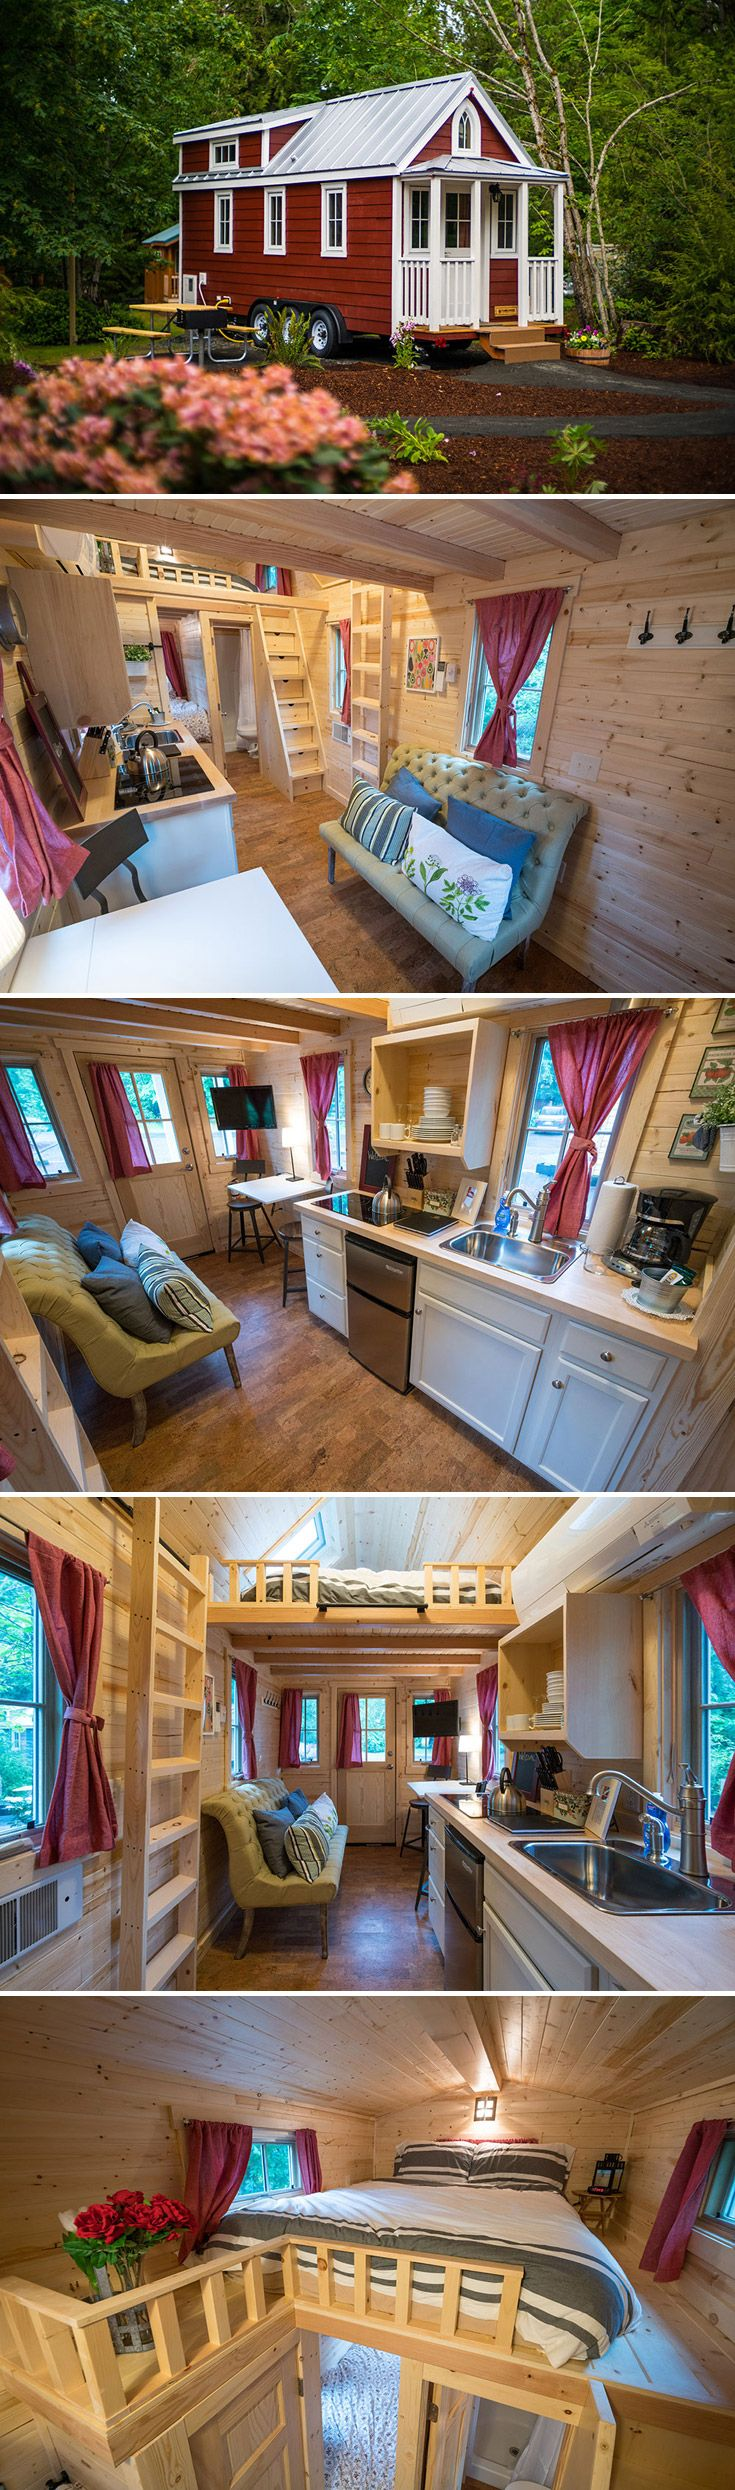 best 20 tumbleweed house ideas on pinterest tumbleweed homes scarlett at mt hood tiny house village